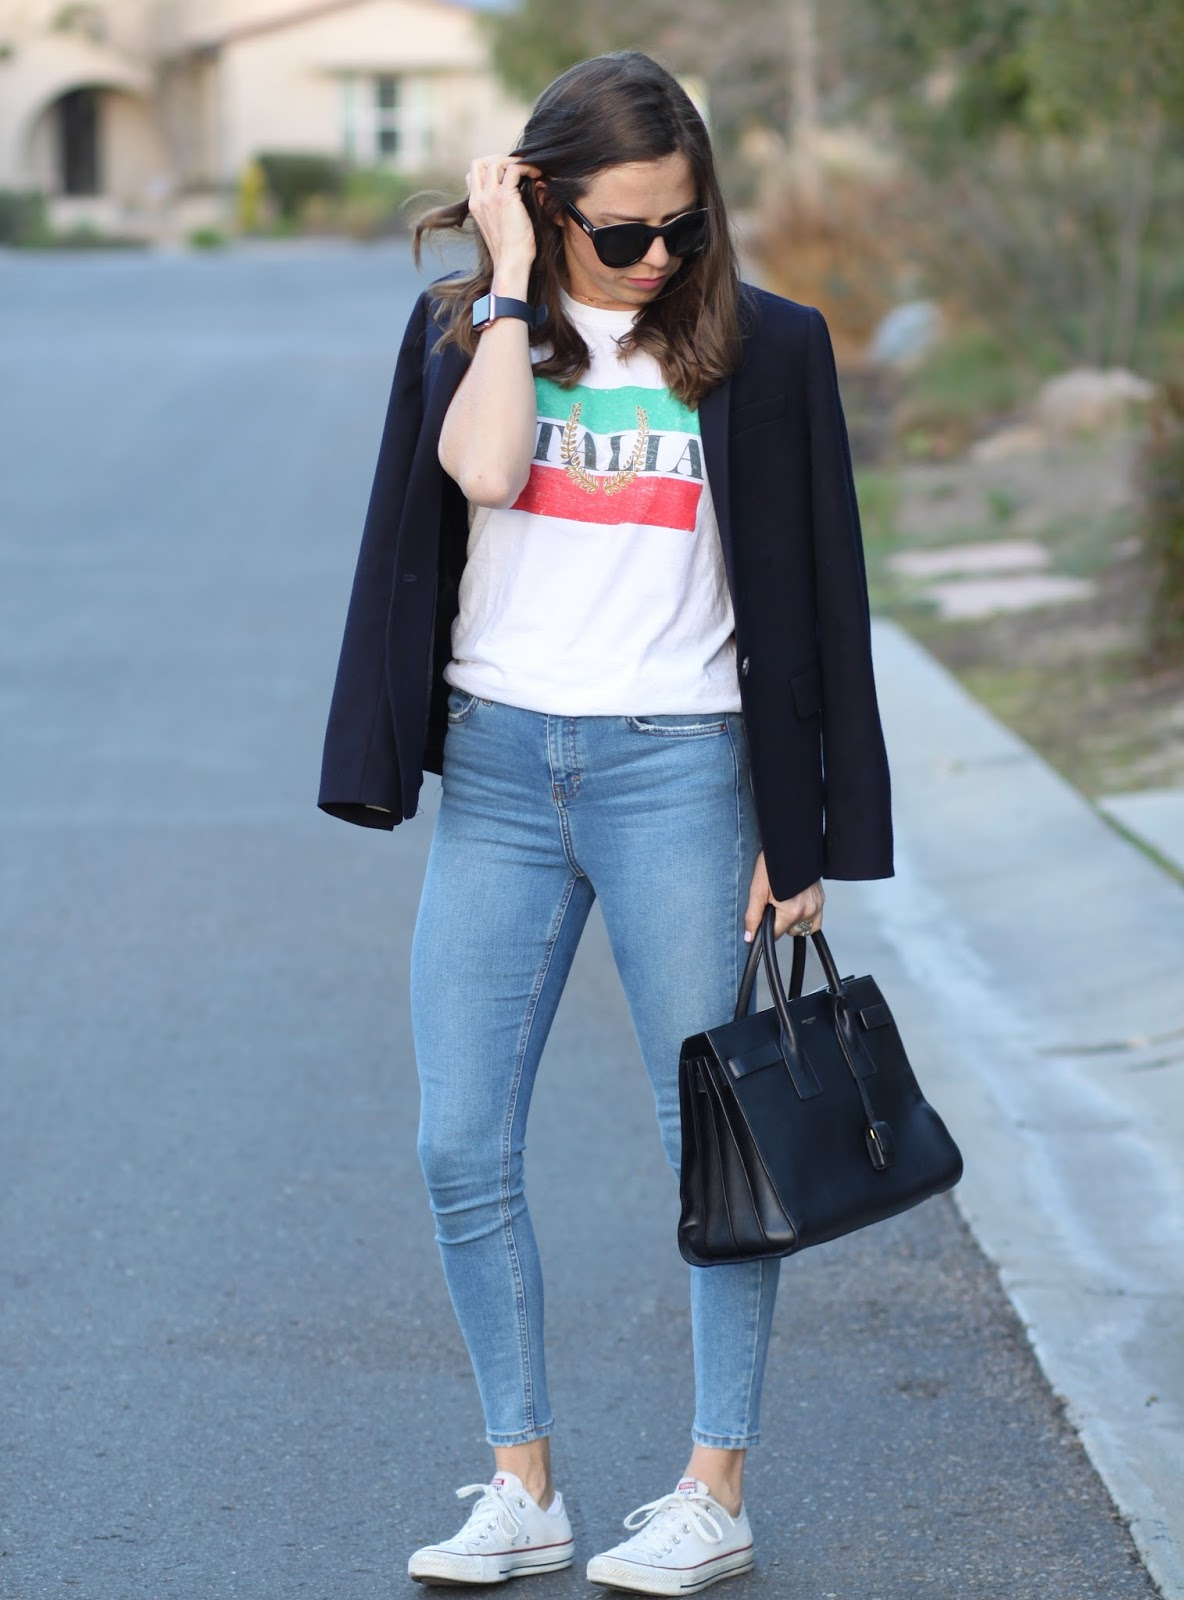 italia tee and blazer outfit